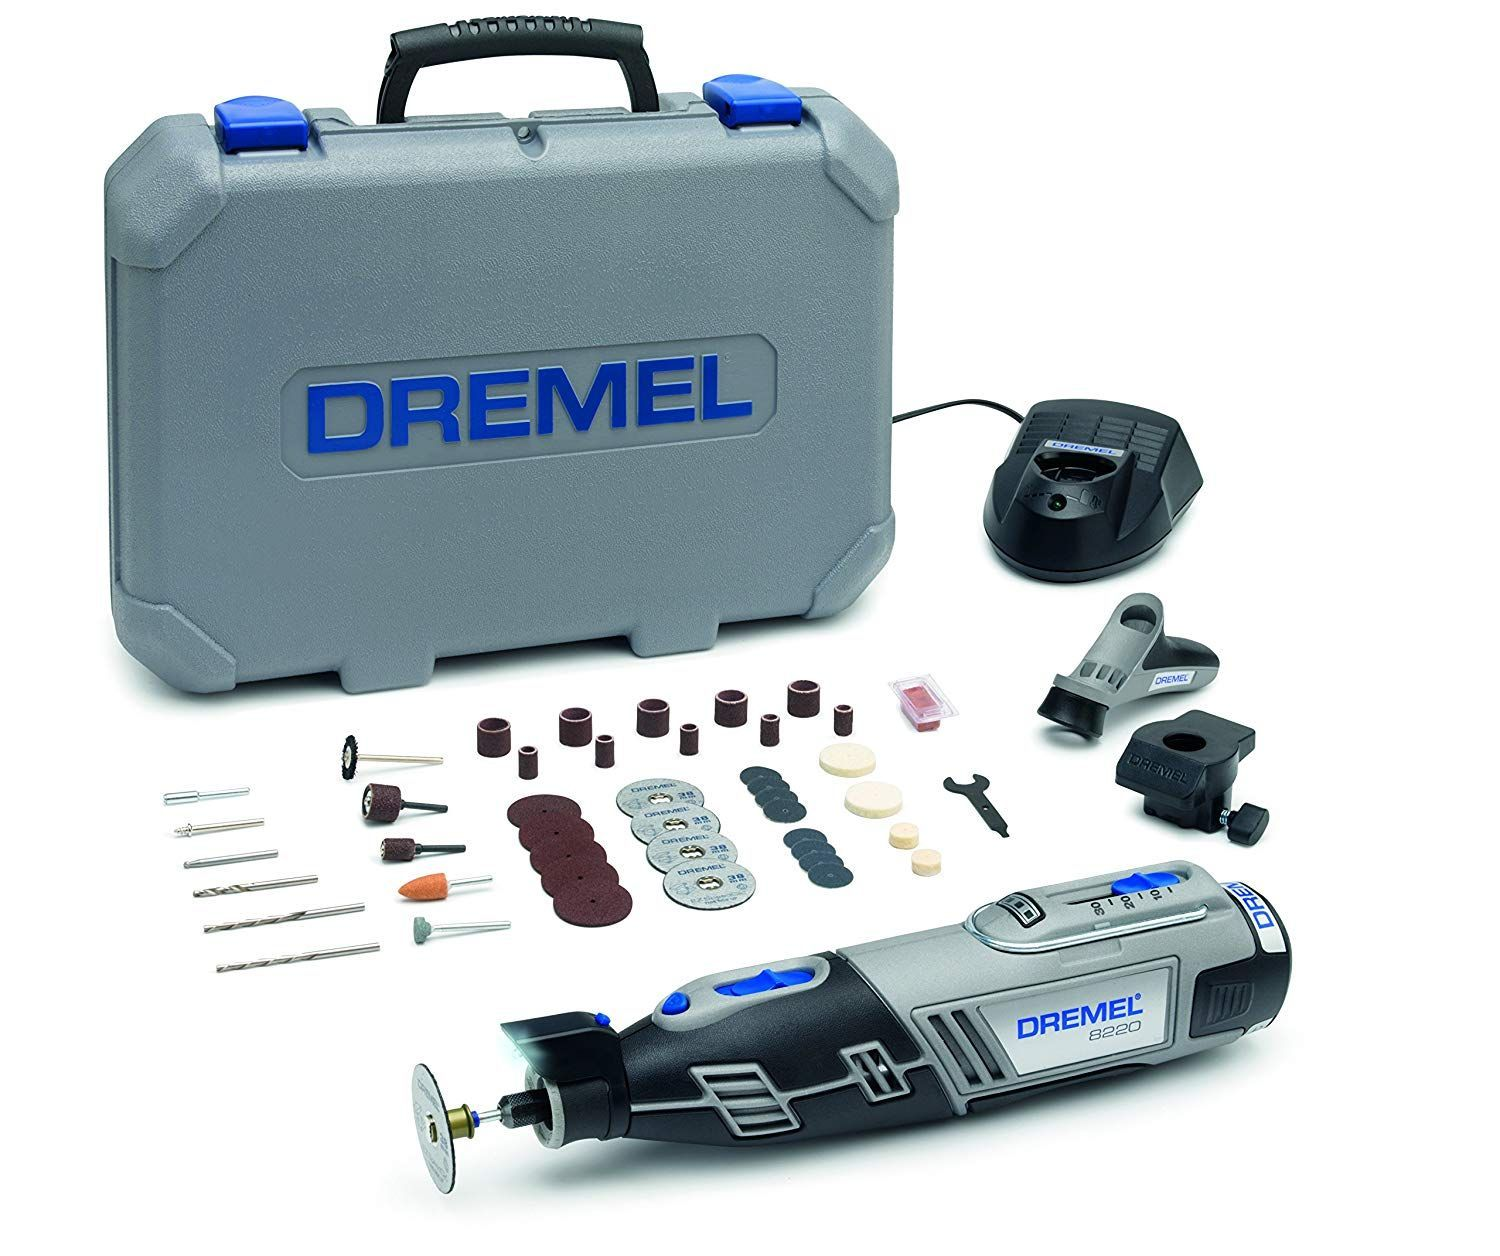 Dremel 8220 From Bunnings With Images Dremel Multitool Ebay